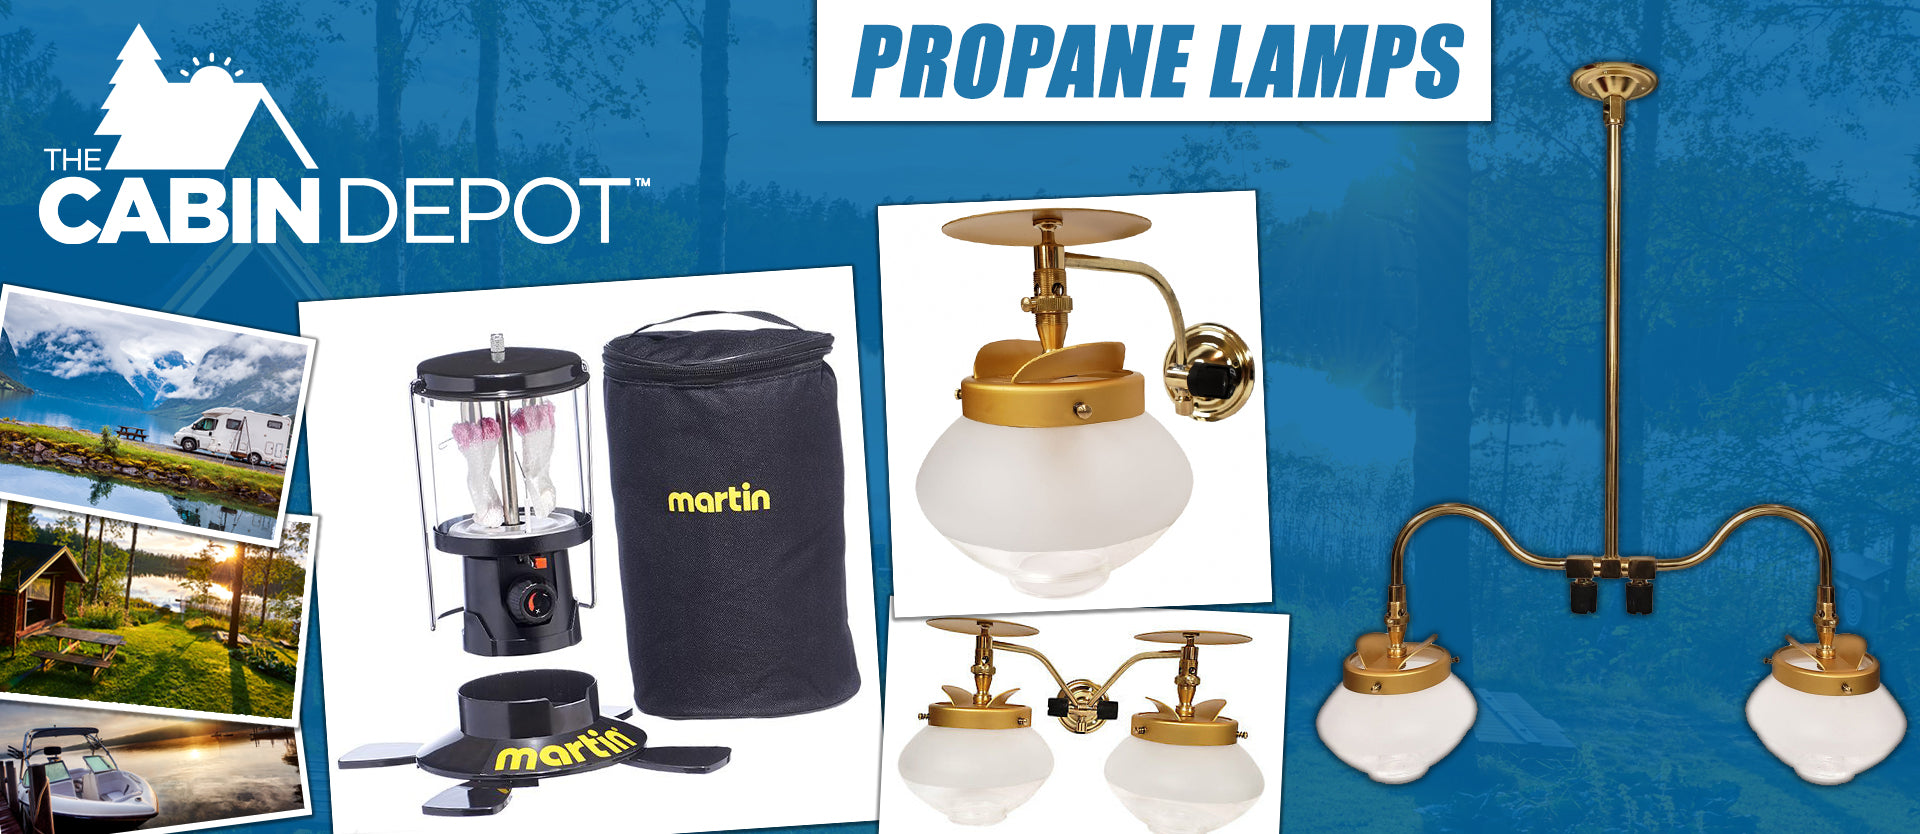 Propane Lamps Off Grid The Cabin Depot ™ Canada